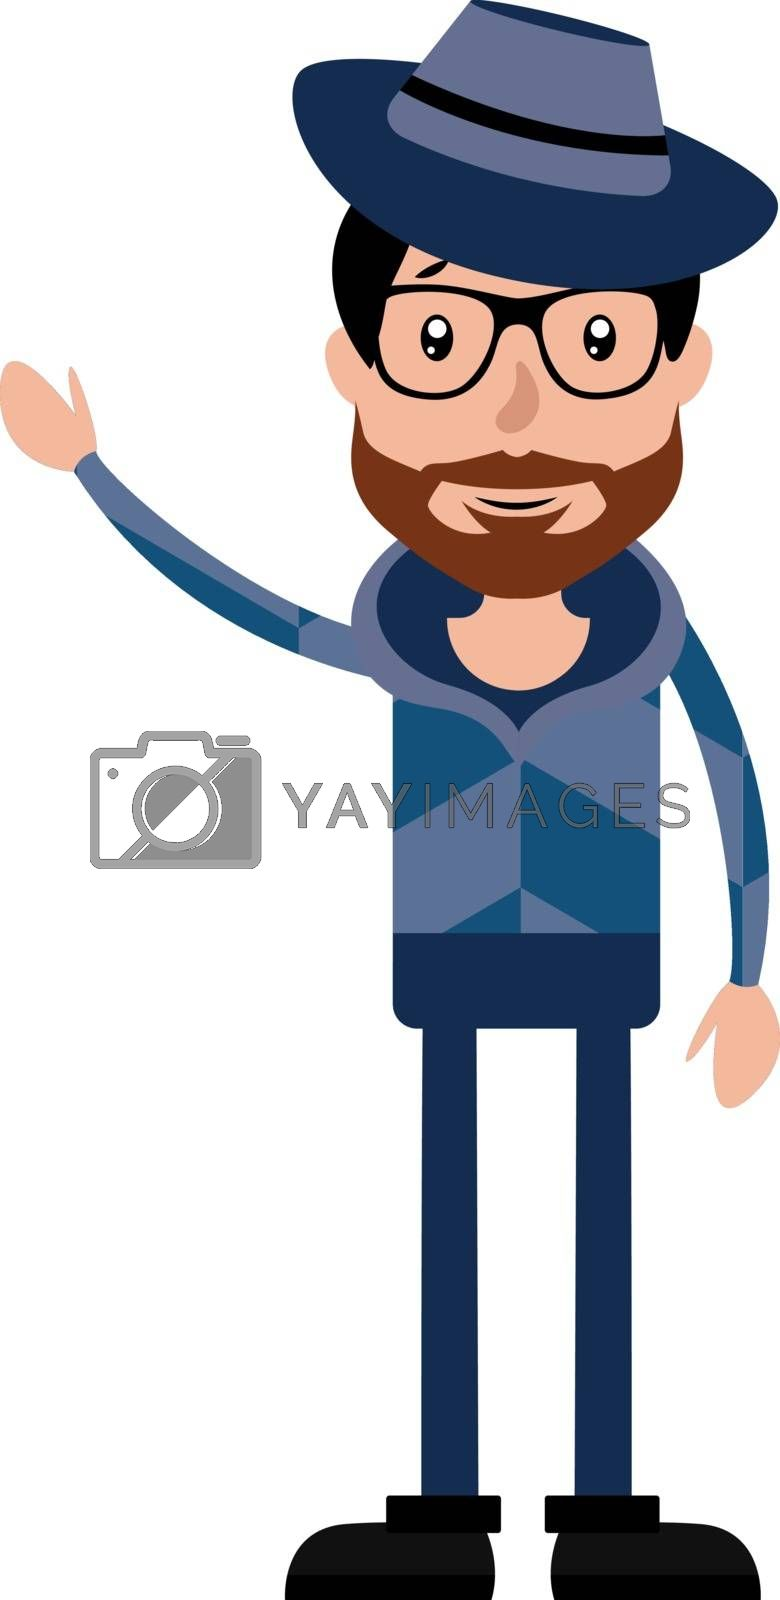 Royalty free image of Funny and cool cartoon guy in casual clothes illustration vector by Morphart